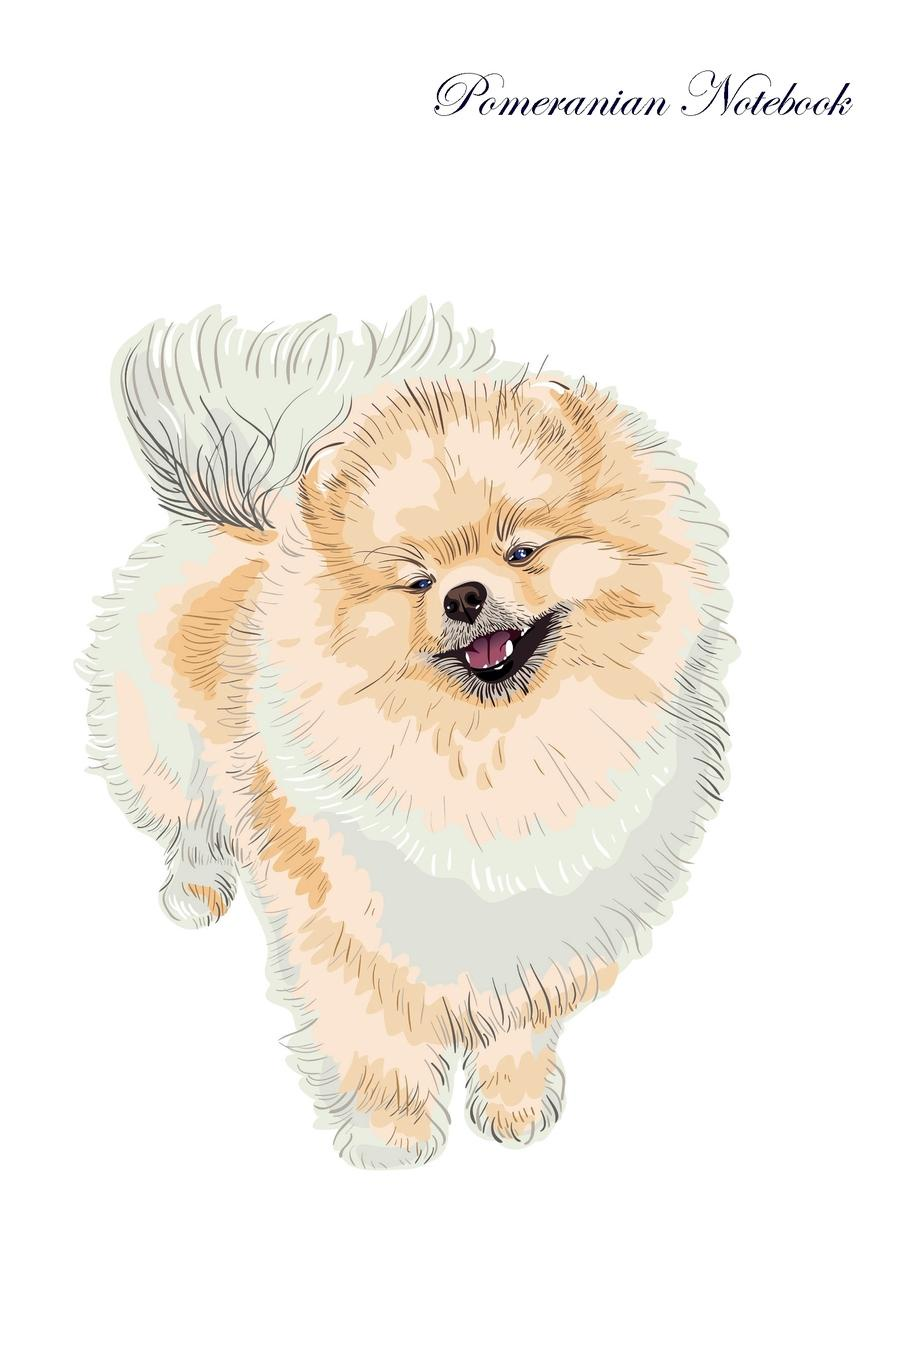 Pet Care Inc. Pomeranian Notebook Record Journal, Diary, Special Memories, To Do List, Academic Notepad, and Much More portable cute weekly planner sweet notebook fresh student schedule journal diary writing book school supplies